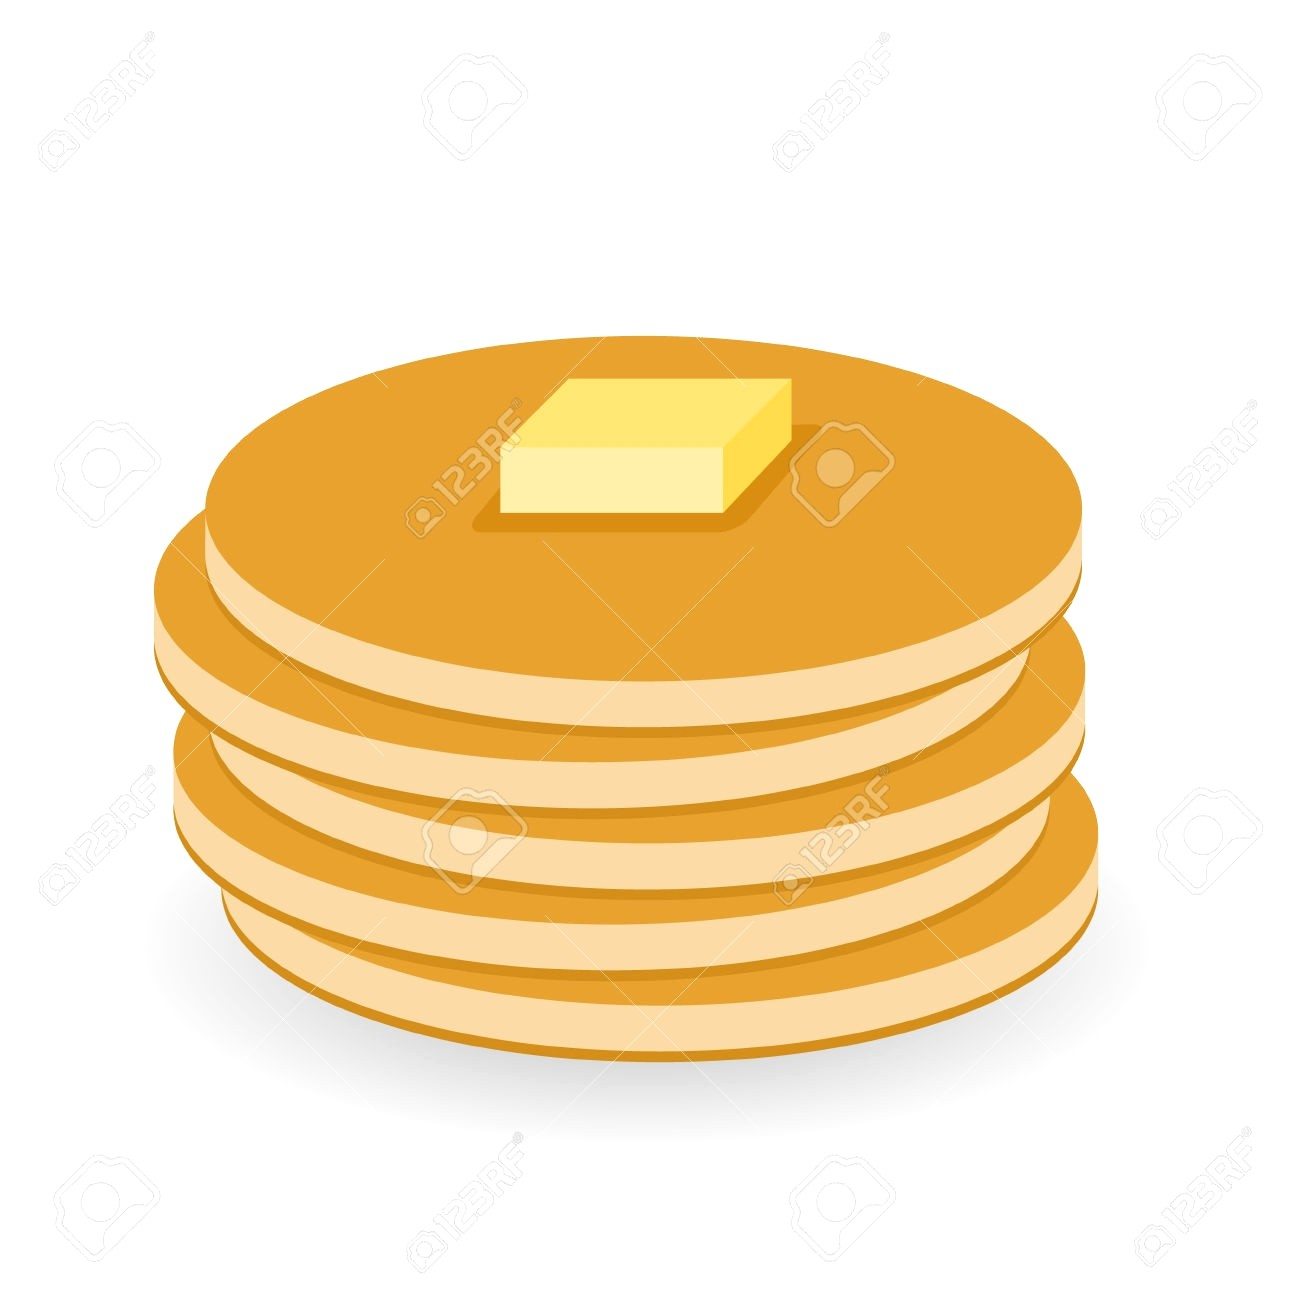 hight resolution of free clipart pancakes 2